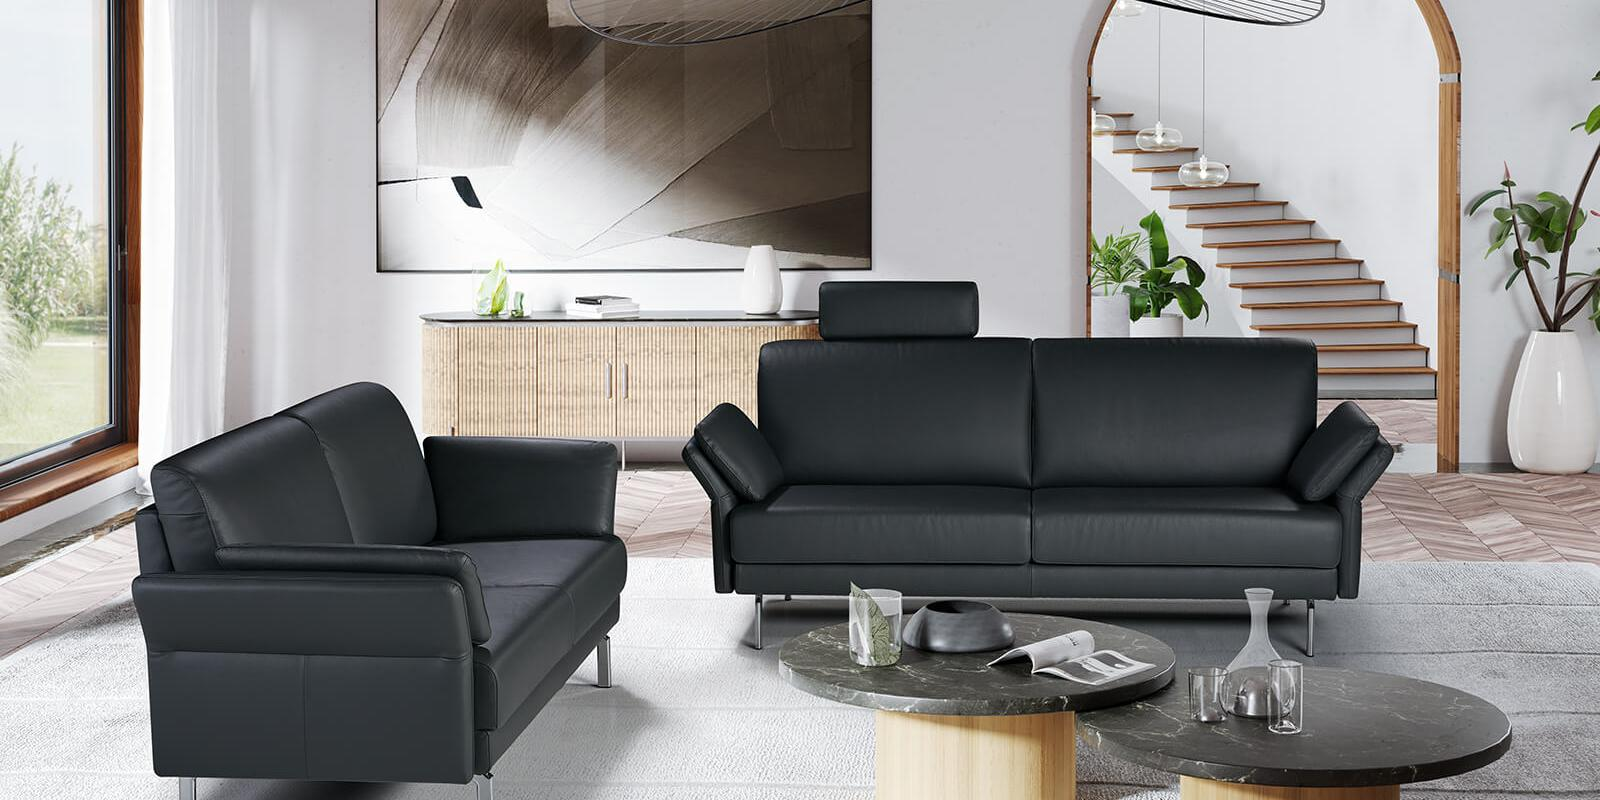 horst collection melide sofa design moebel schwarz leder